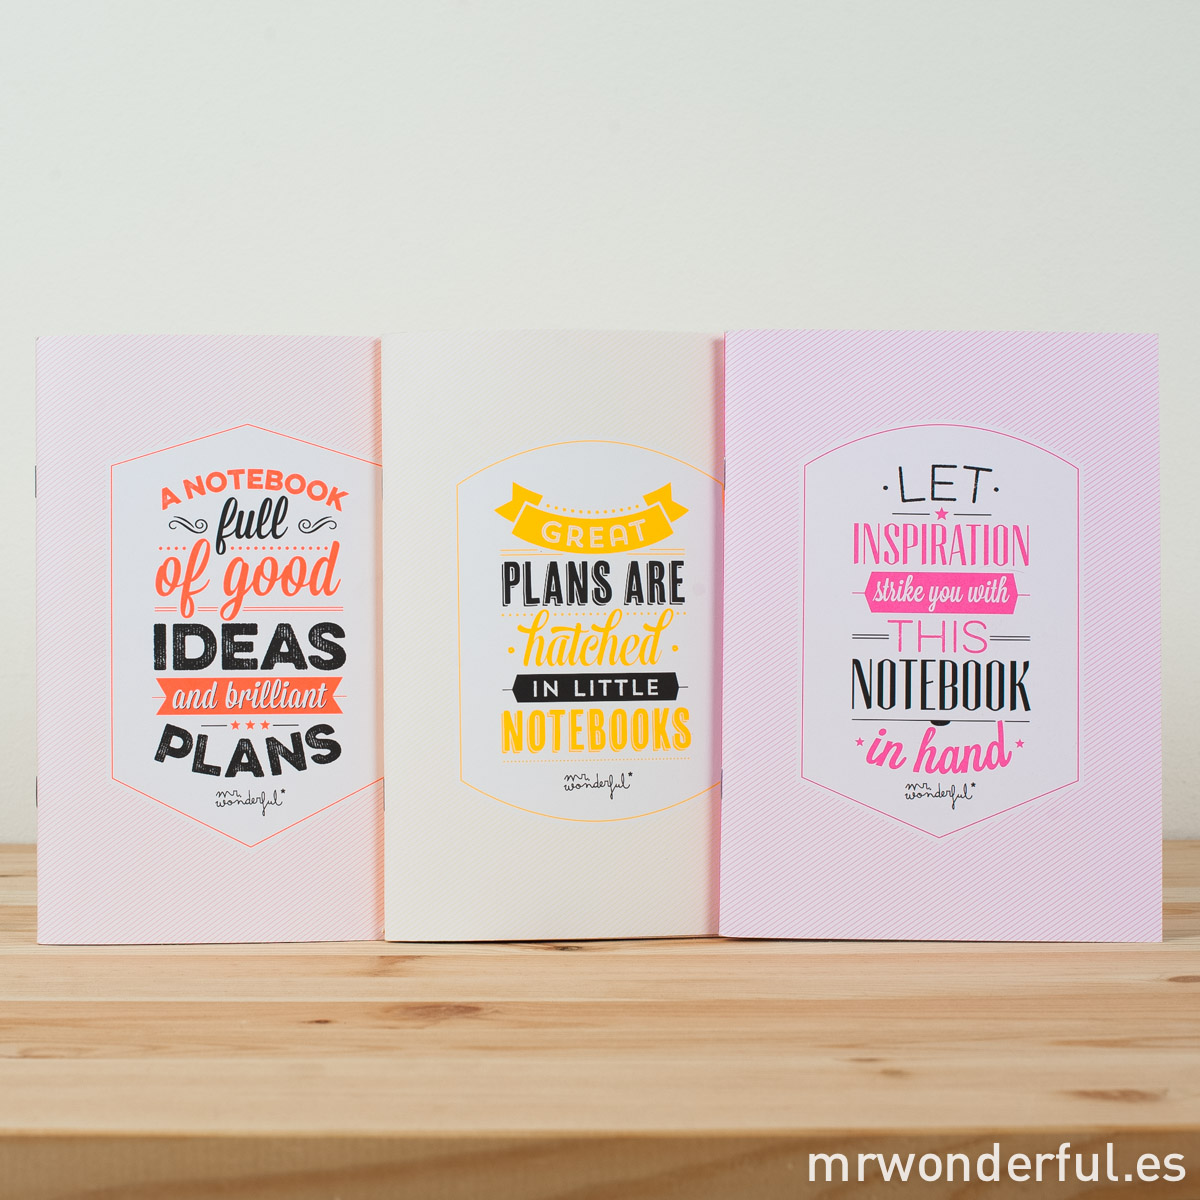 mrwonderful_lib28_libretas-stunning-notebooks-for-the-best-ideas-1